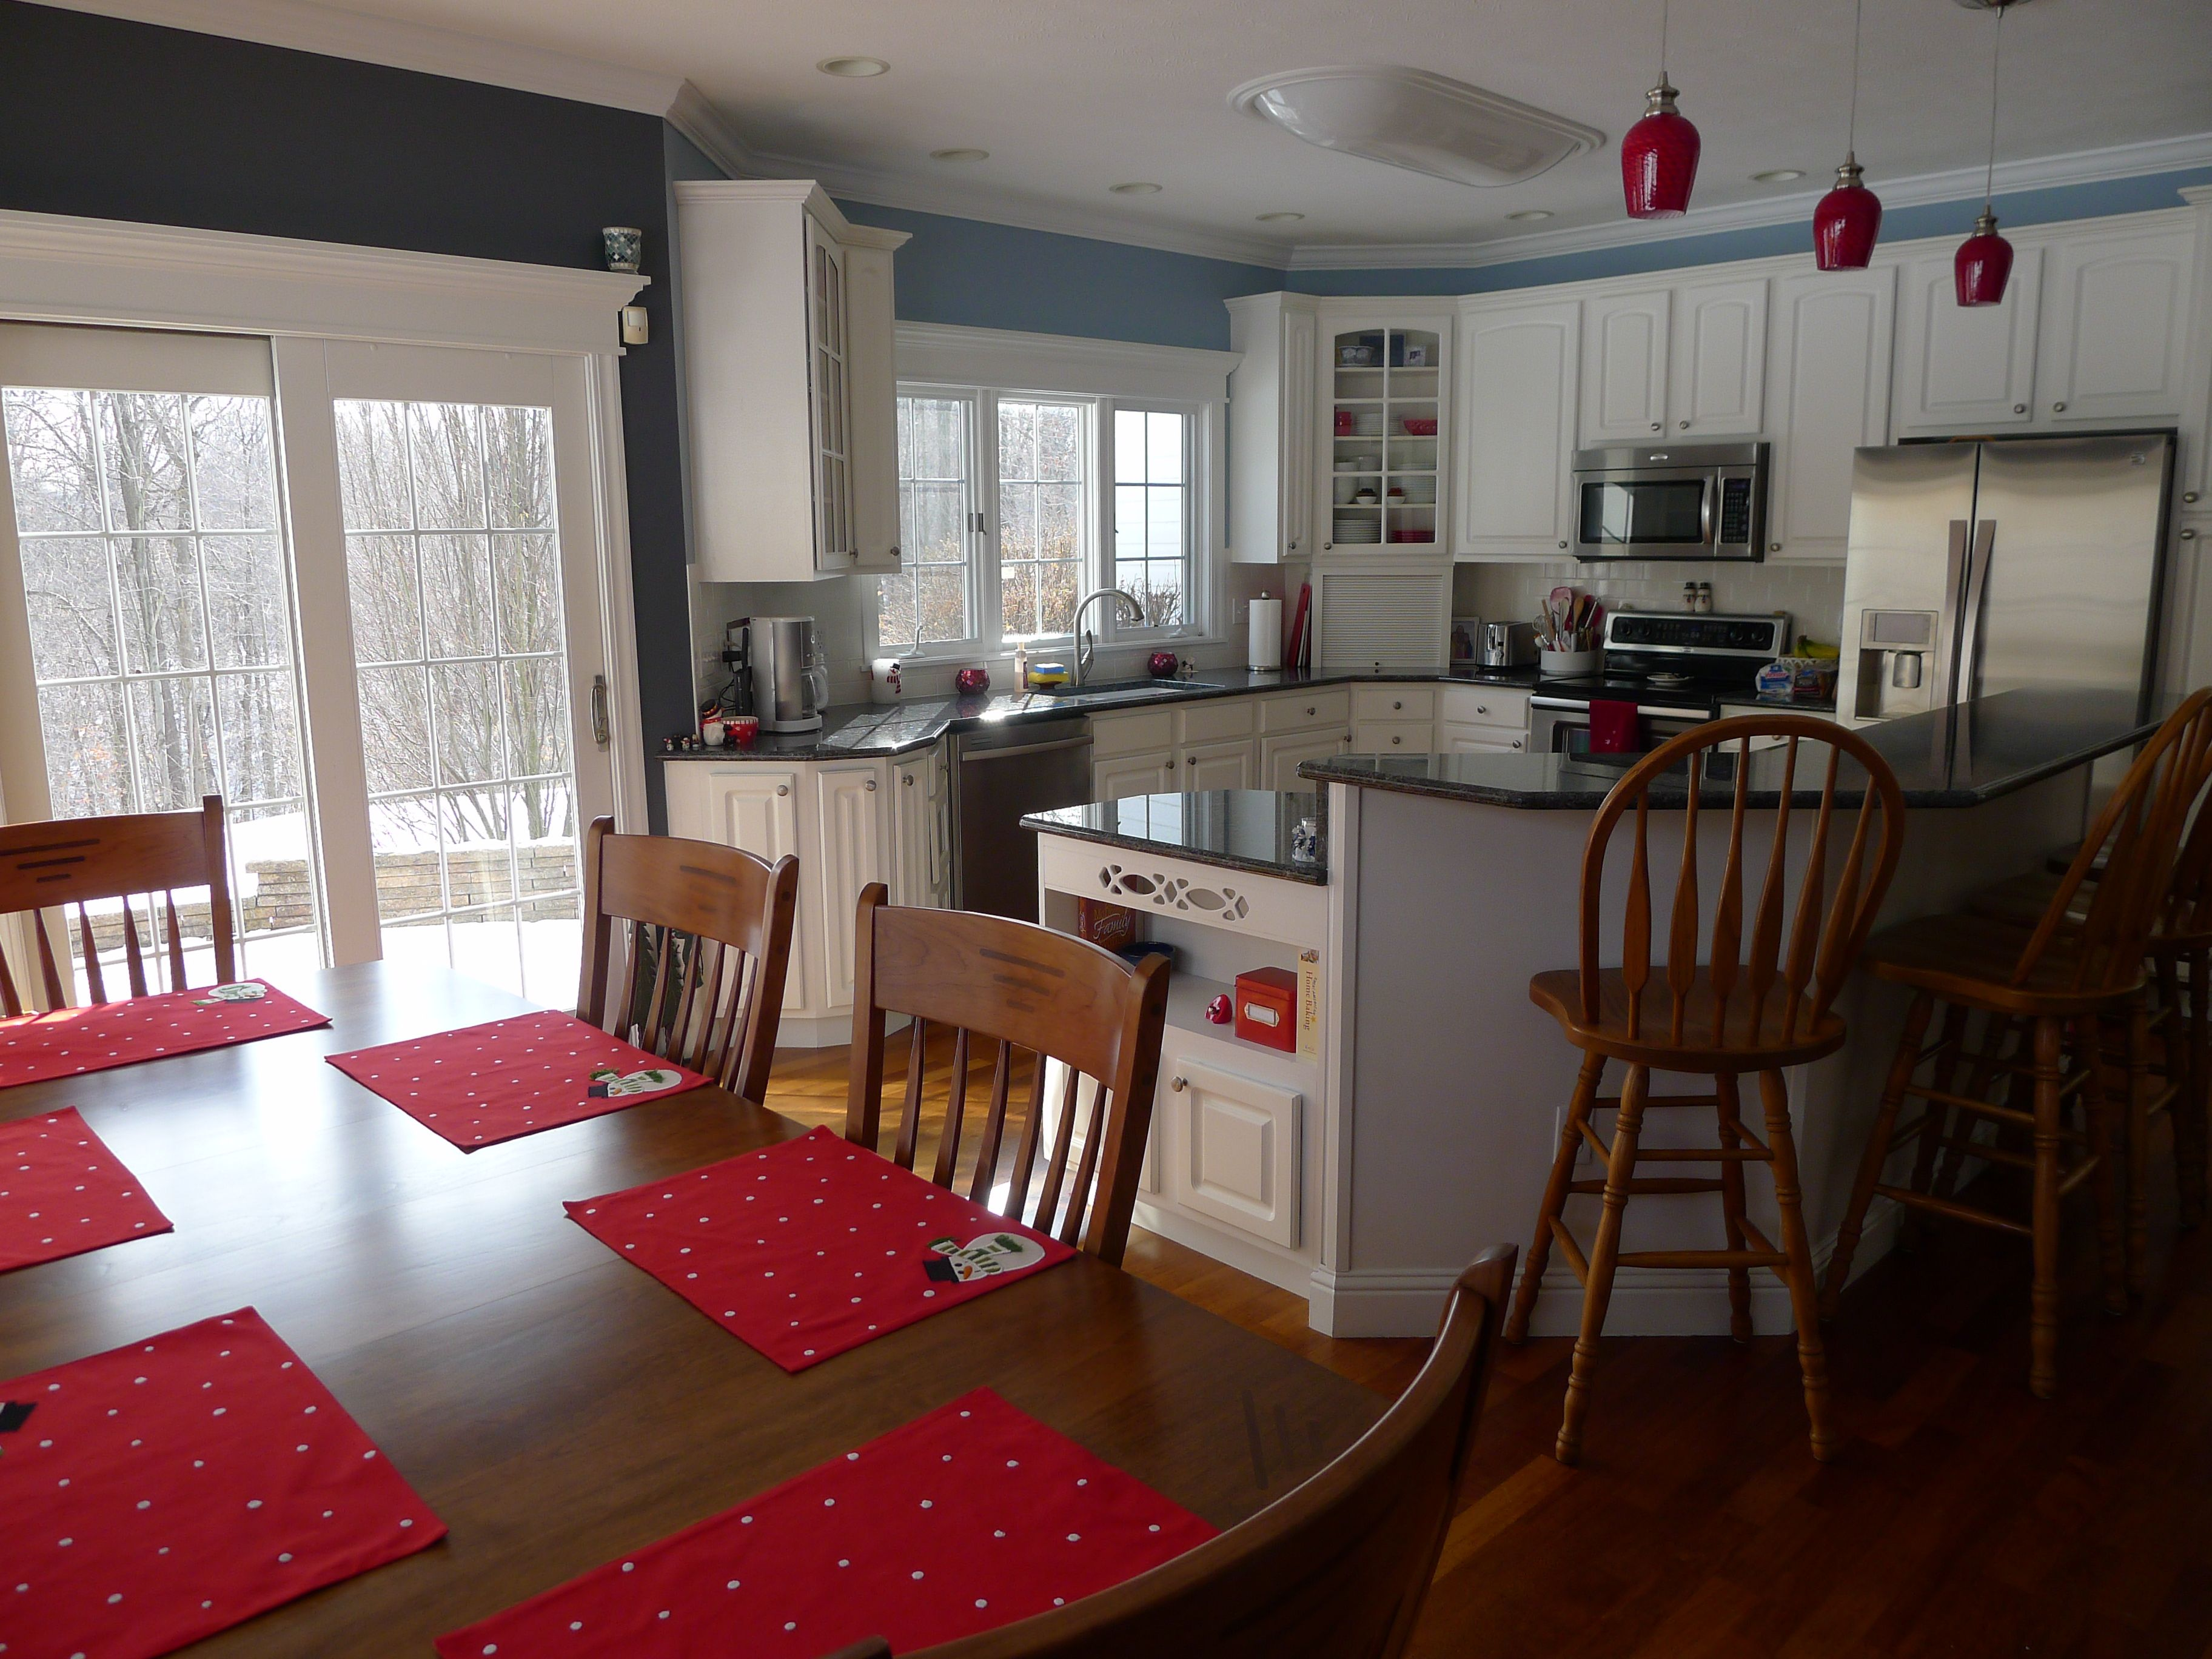 Red Accents Blue And Gray Kitchen With Red Accents Home Pinterest